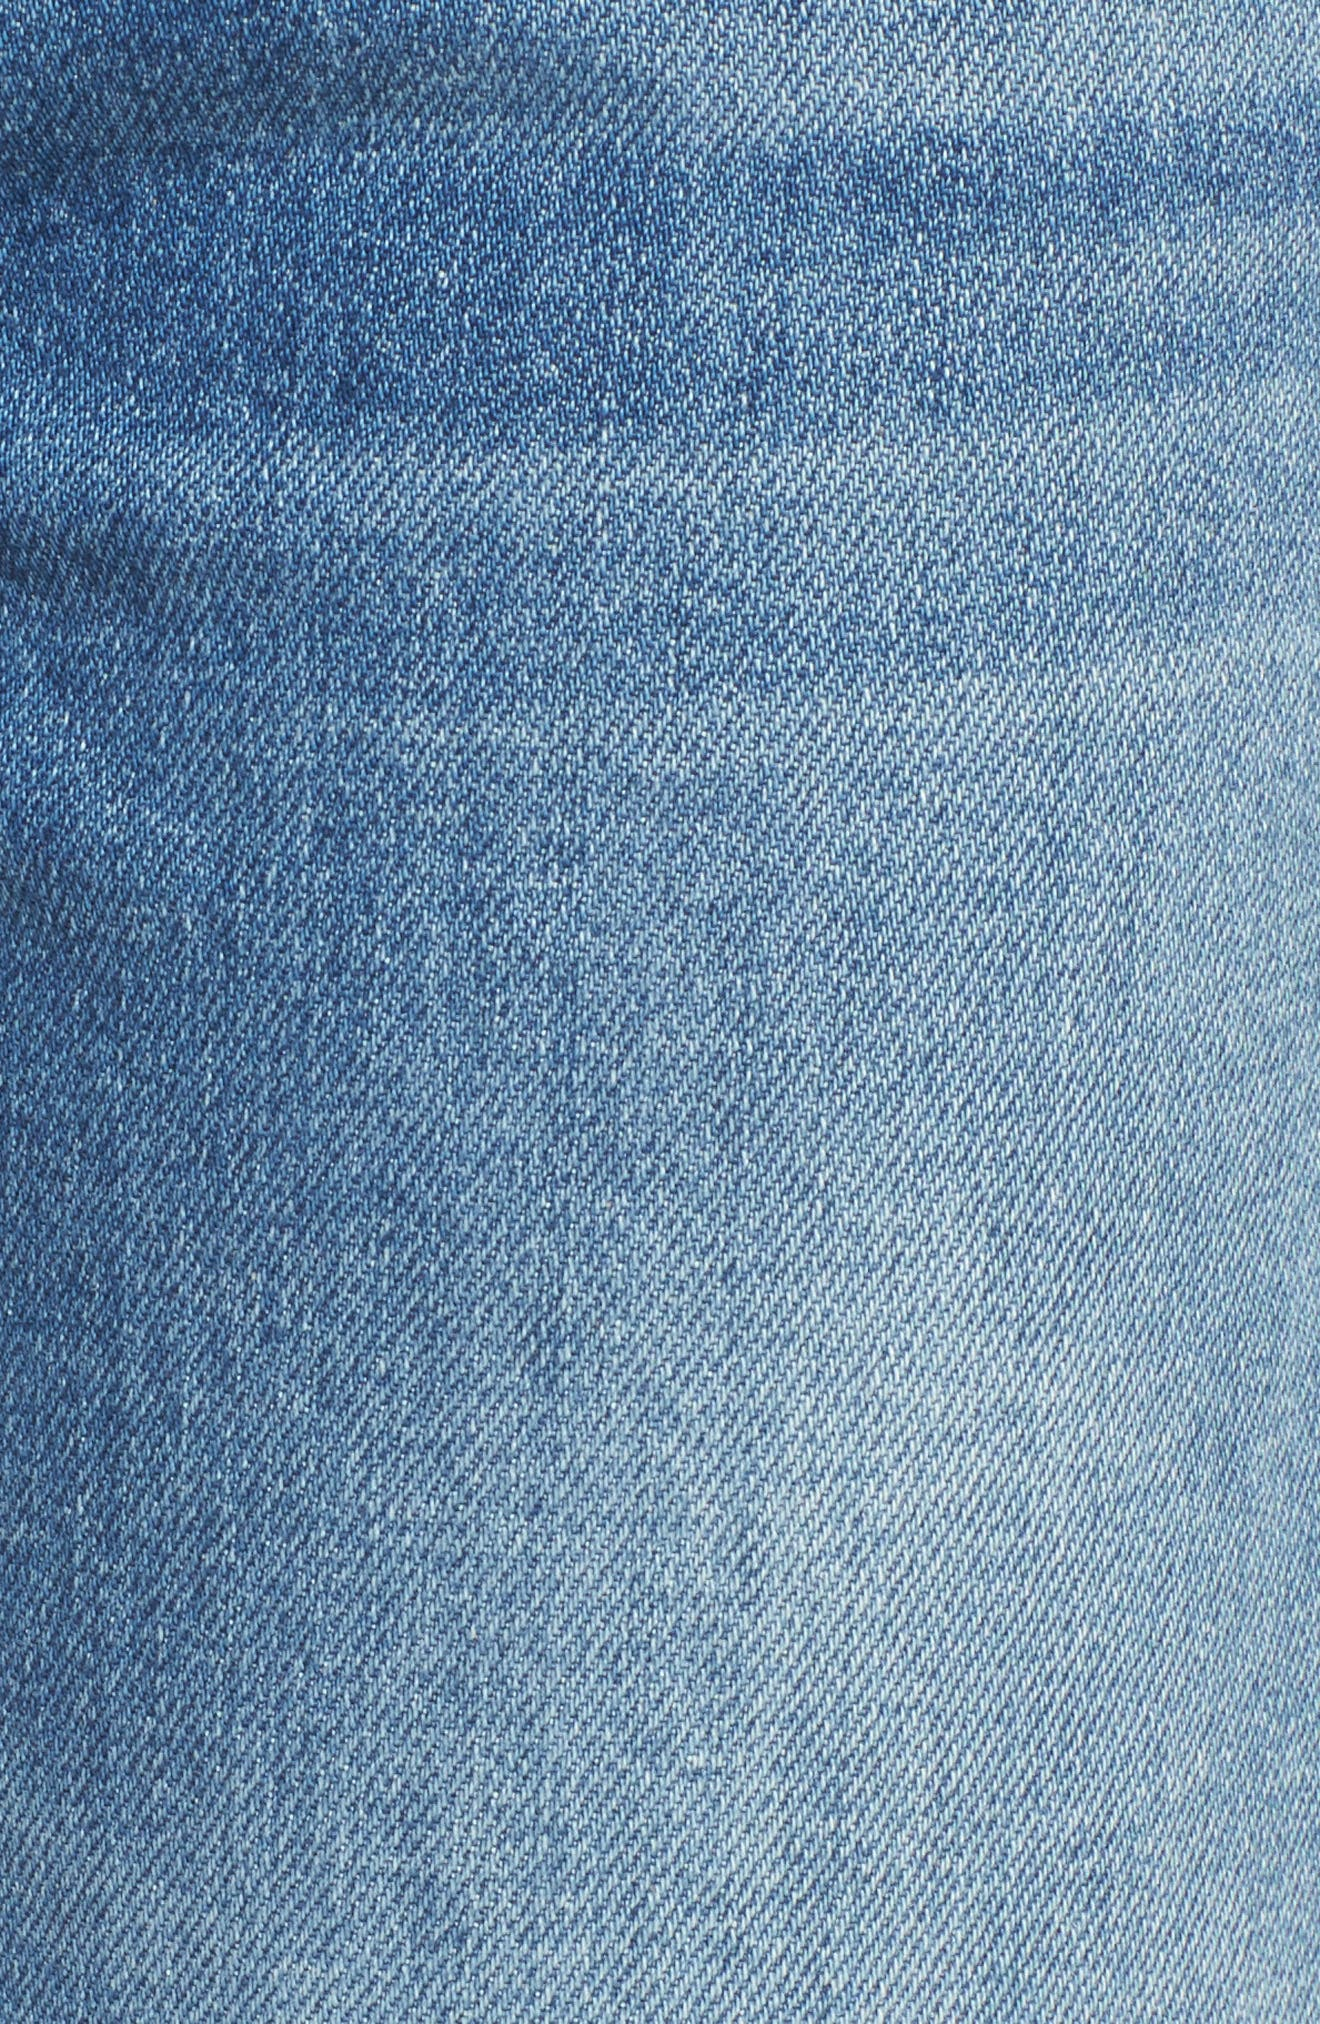 Edie Pieced Hem Cropped Jeans,                             Alternate thumbnail 6, color,                             401